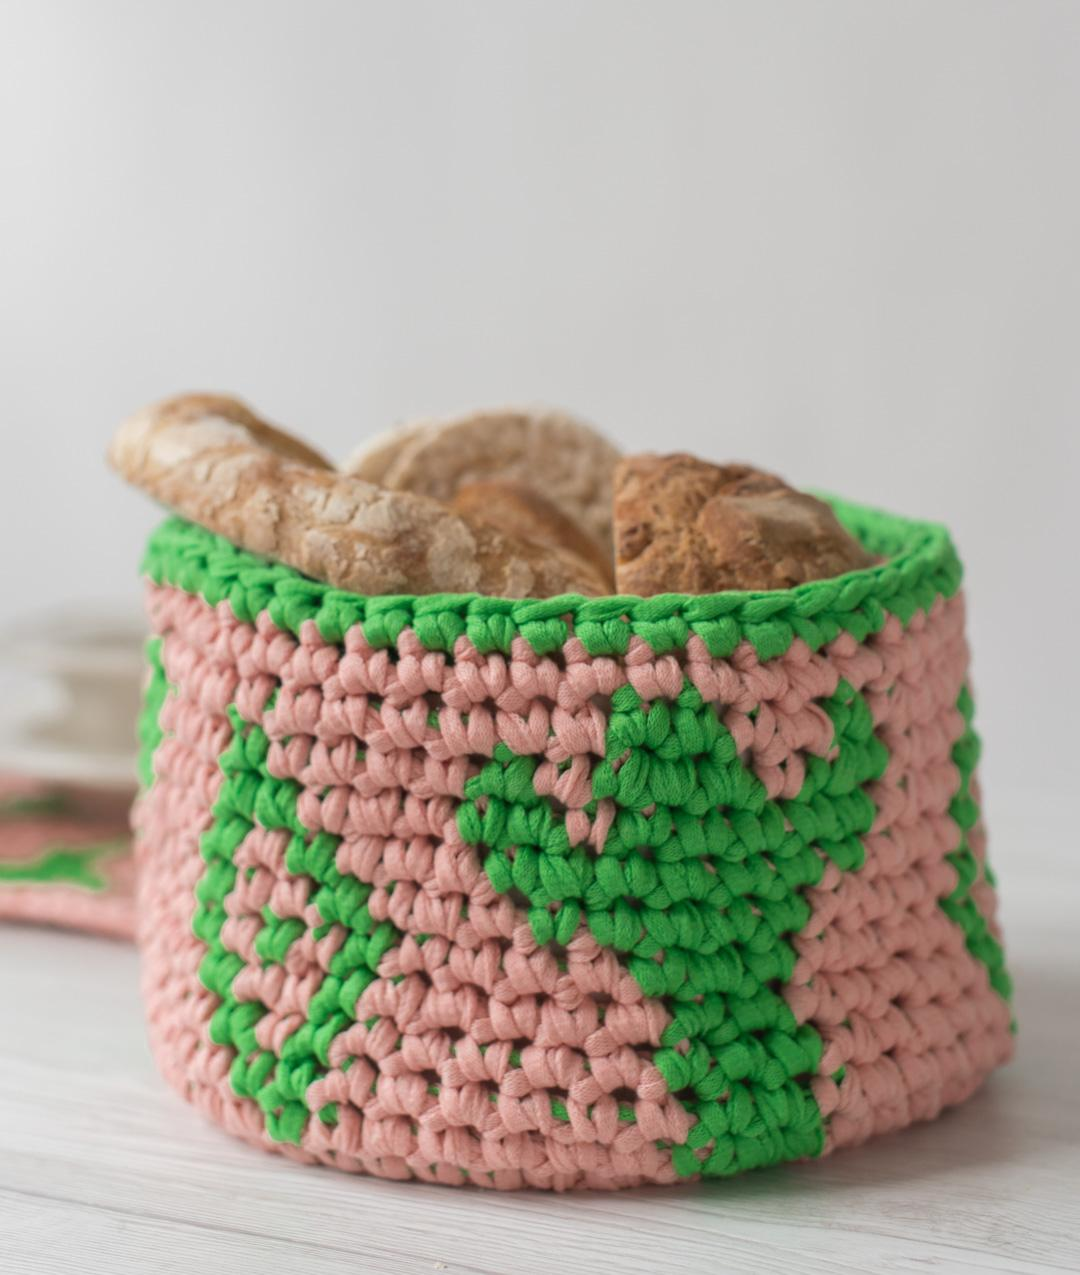 Home Decor Collection - Homeware - CACTUS BASKET - 1